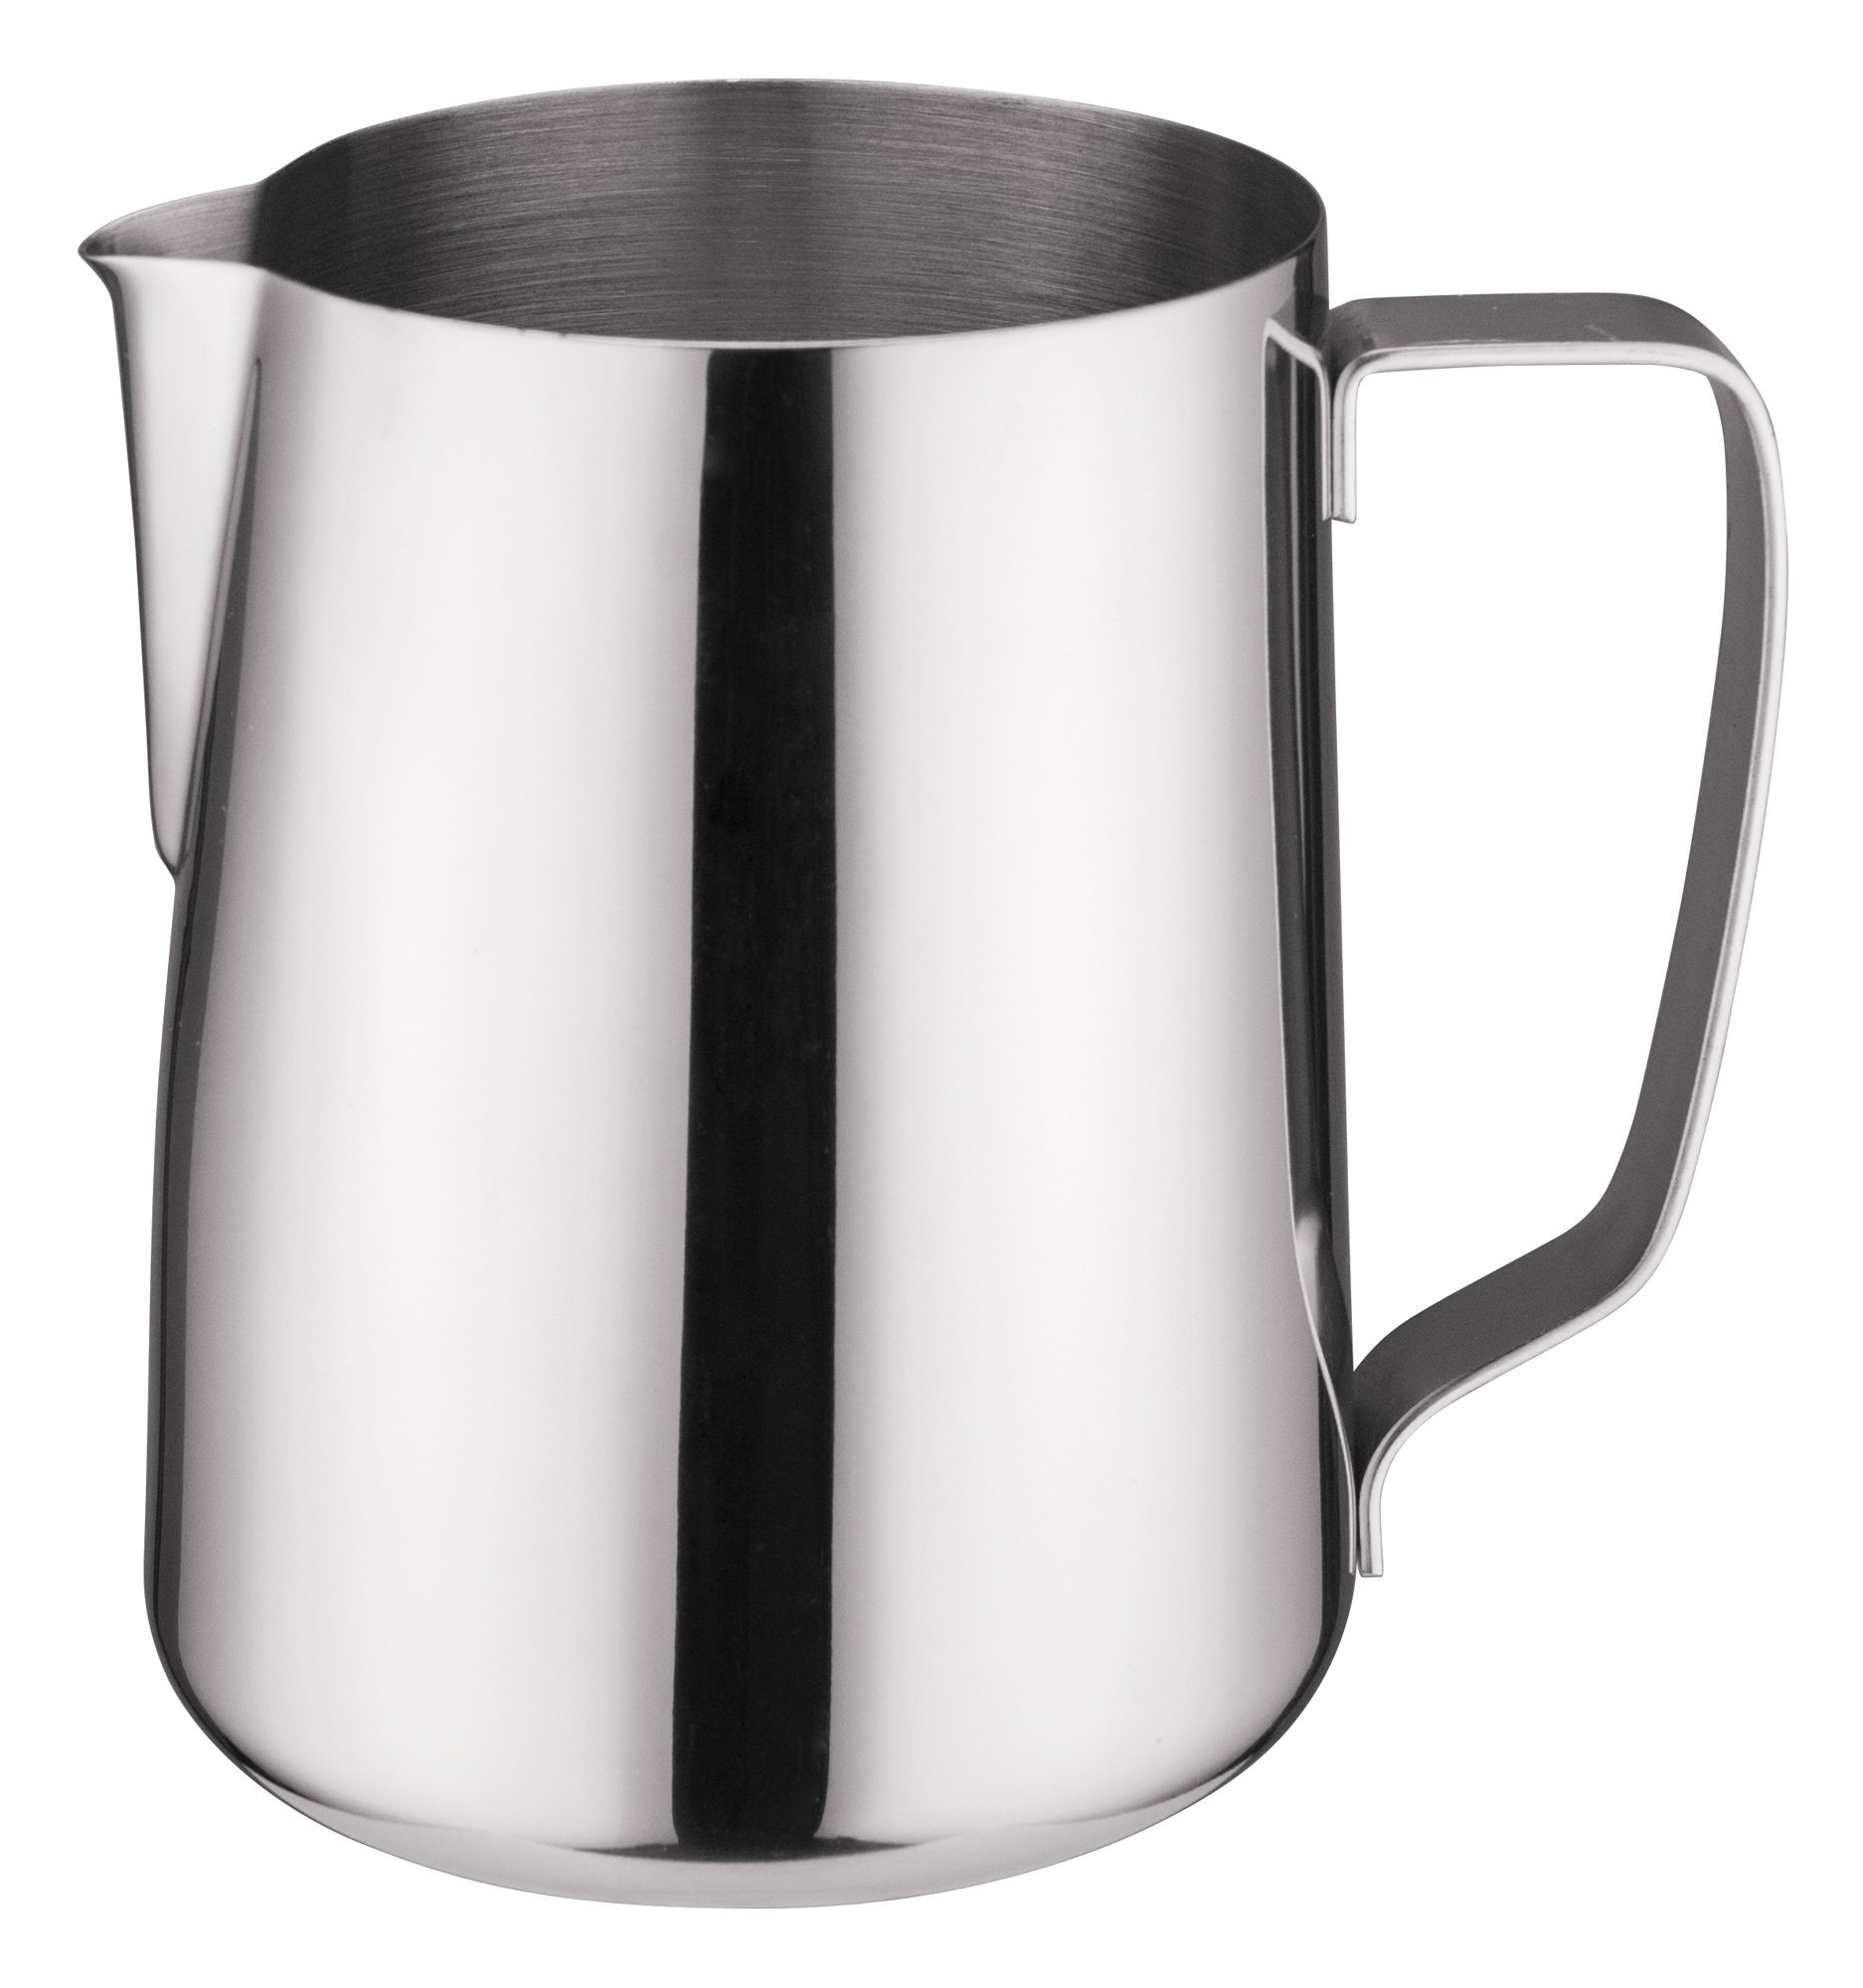 Winco WP-50 Stainless Steel 50 oz. Frothing Pitcher